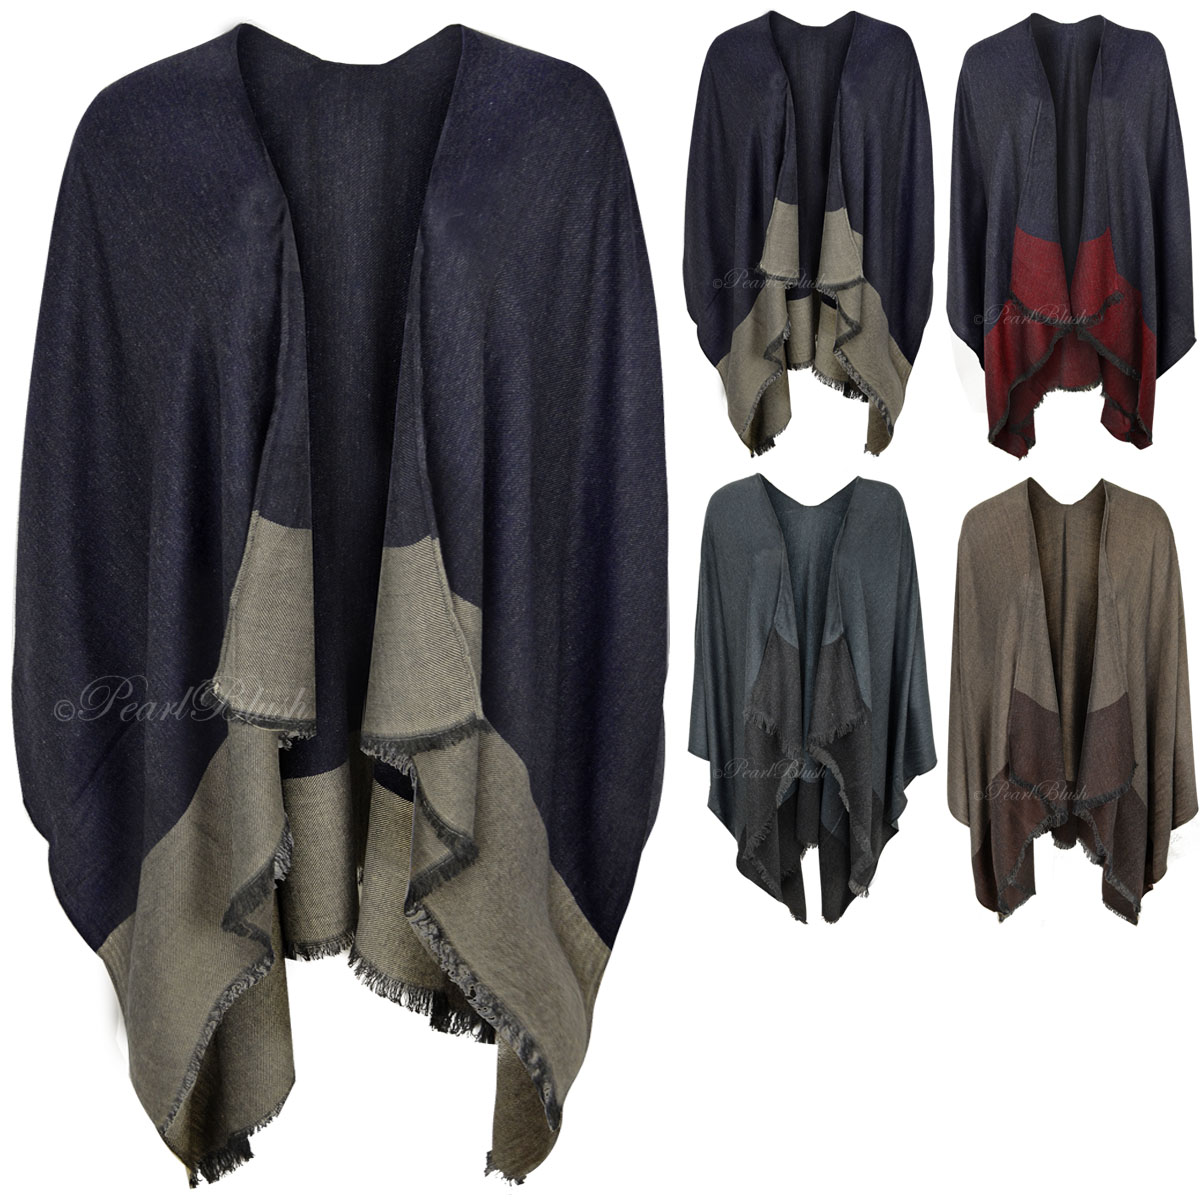 New Womens Ladies Kimono Waterfall Cardigan Shrug Wrap Winter Warm ...